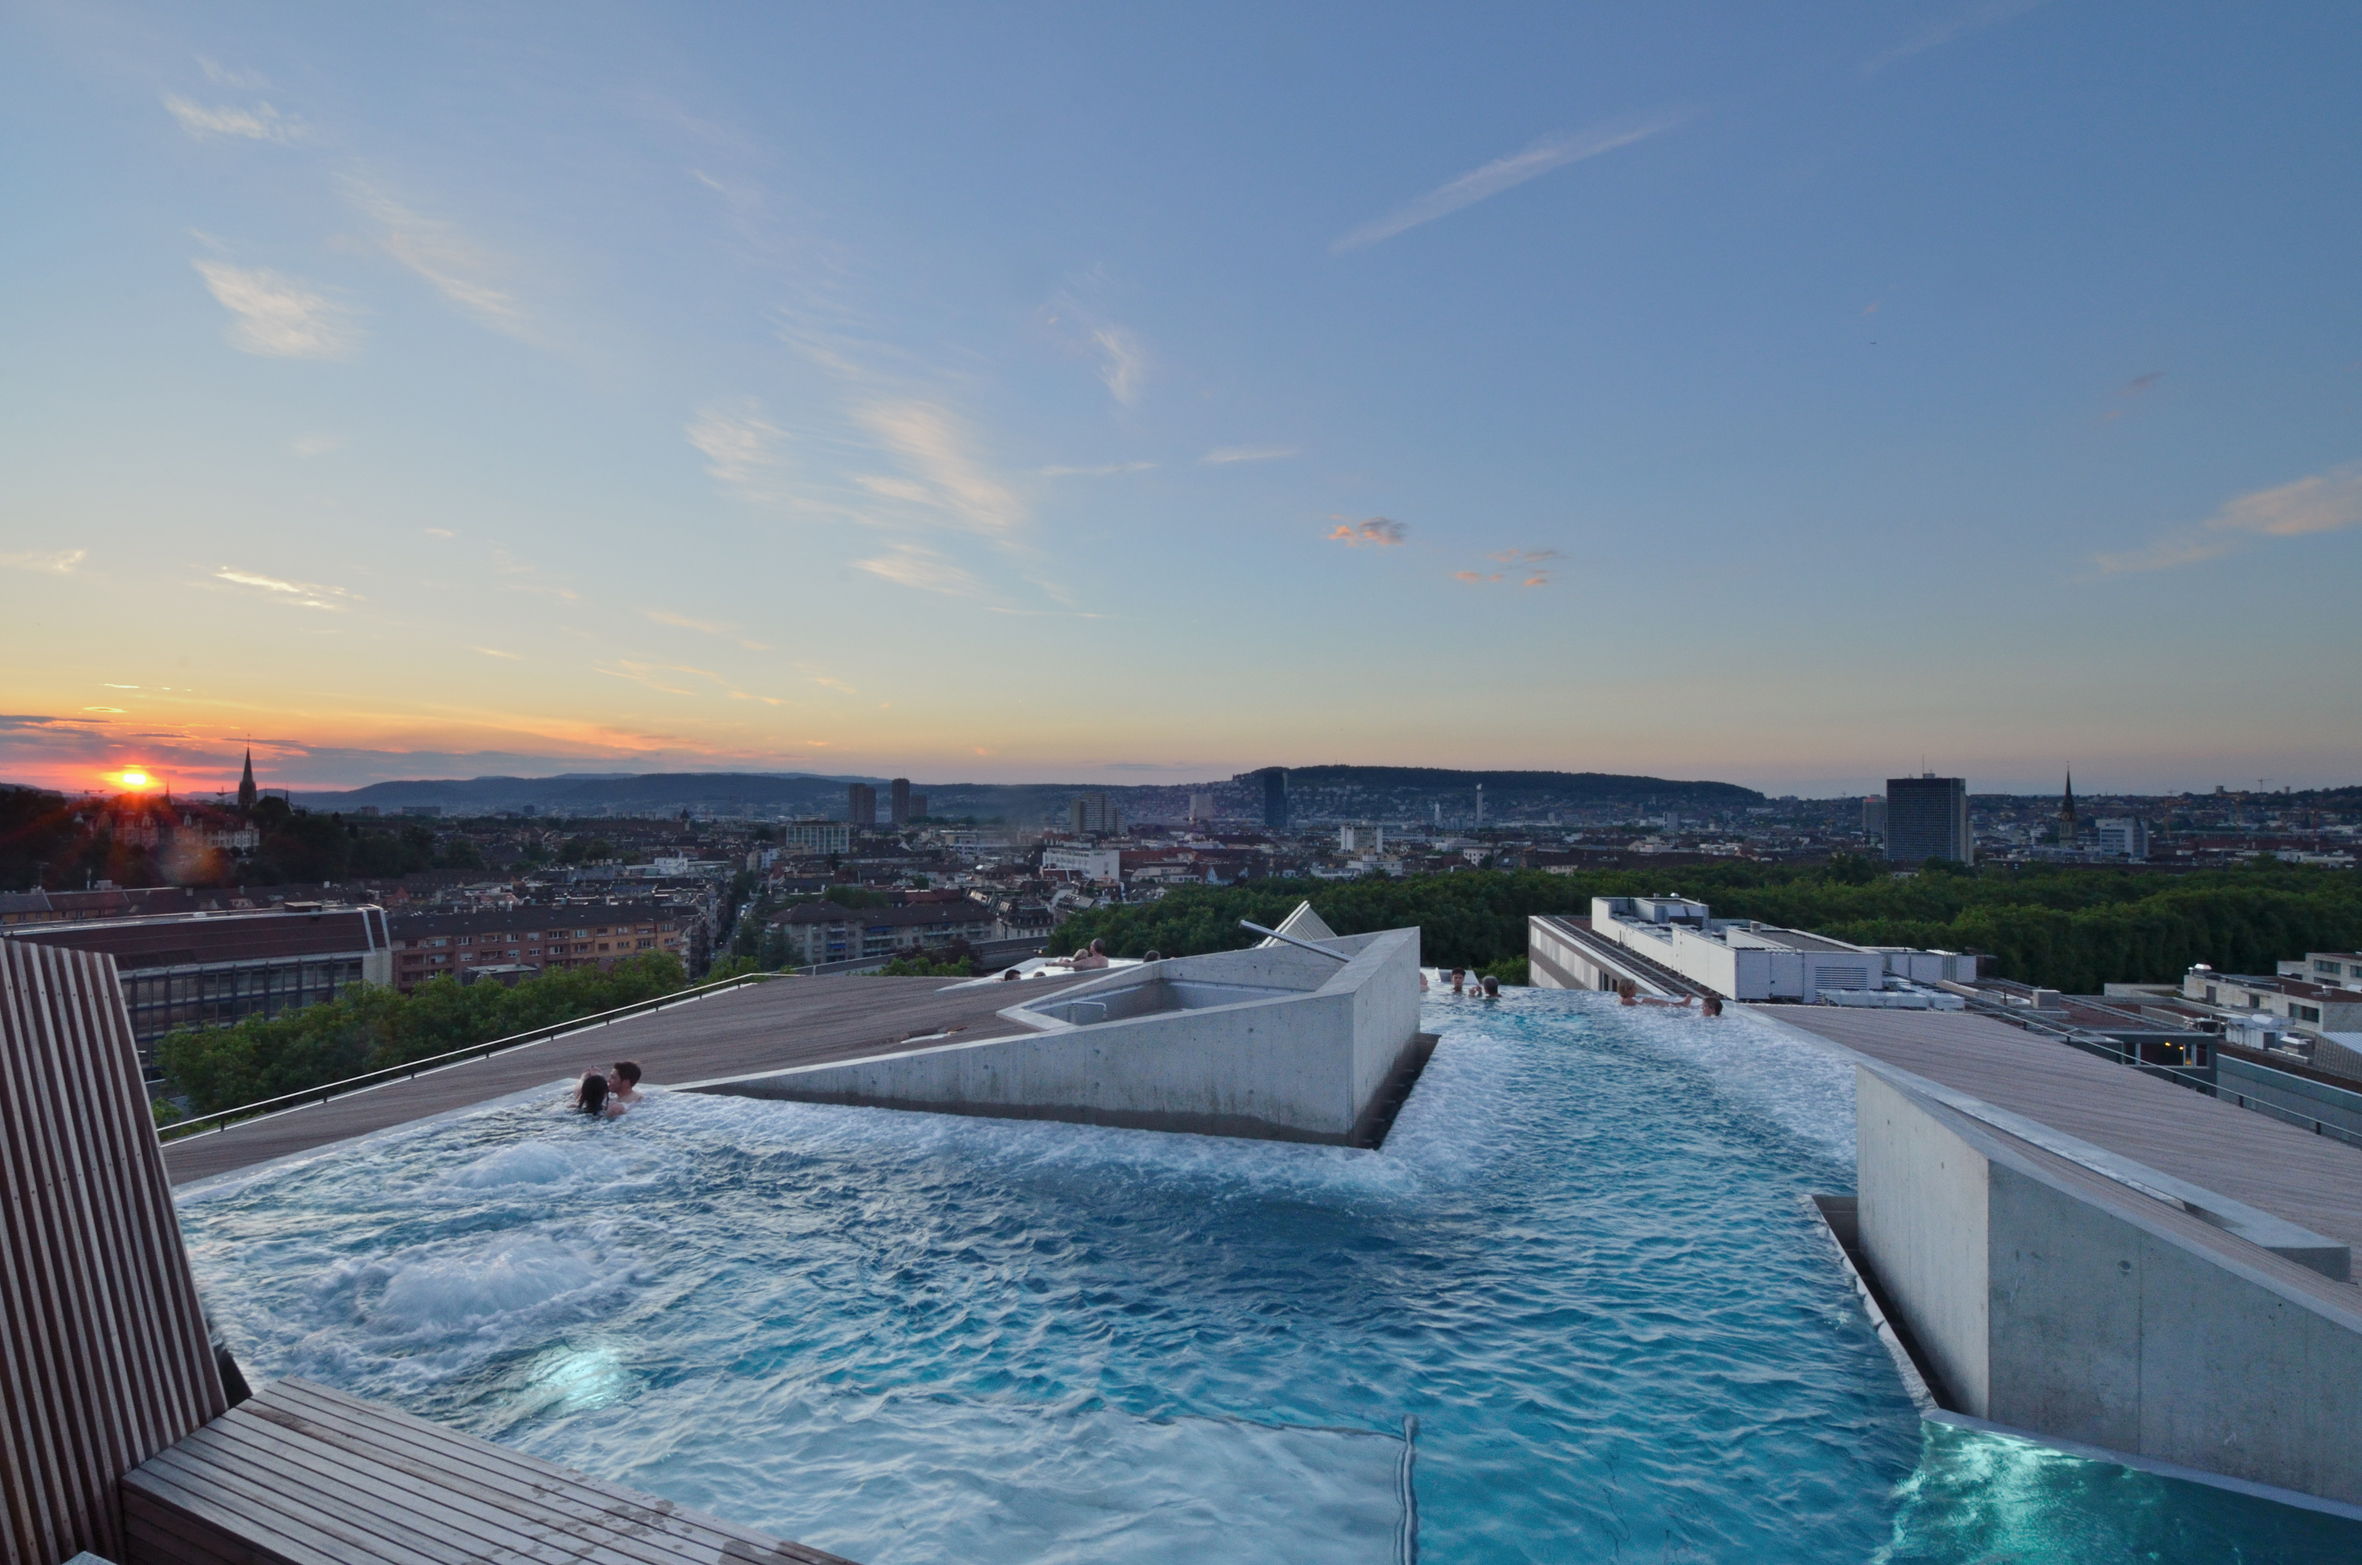 thermalbad spa z rich things to do in enge zurich